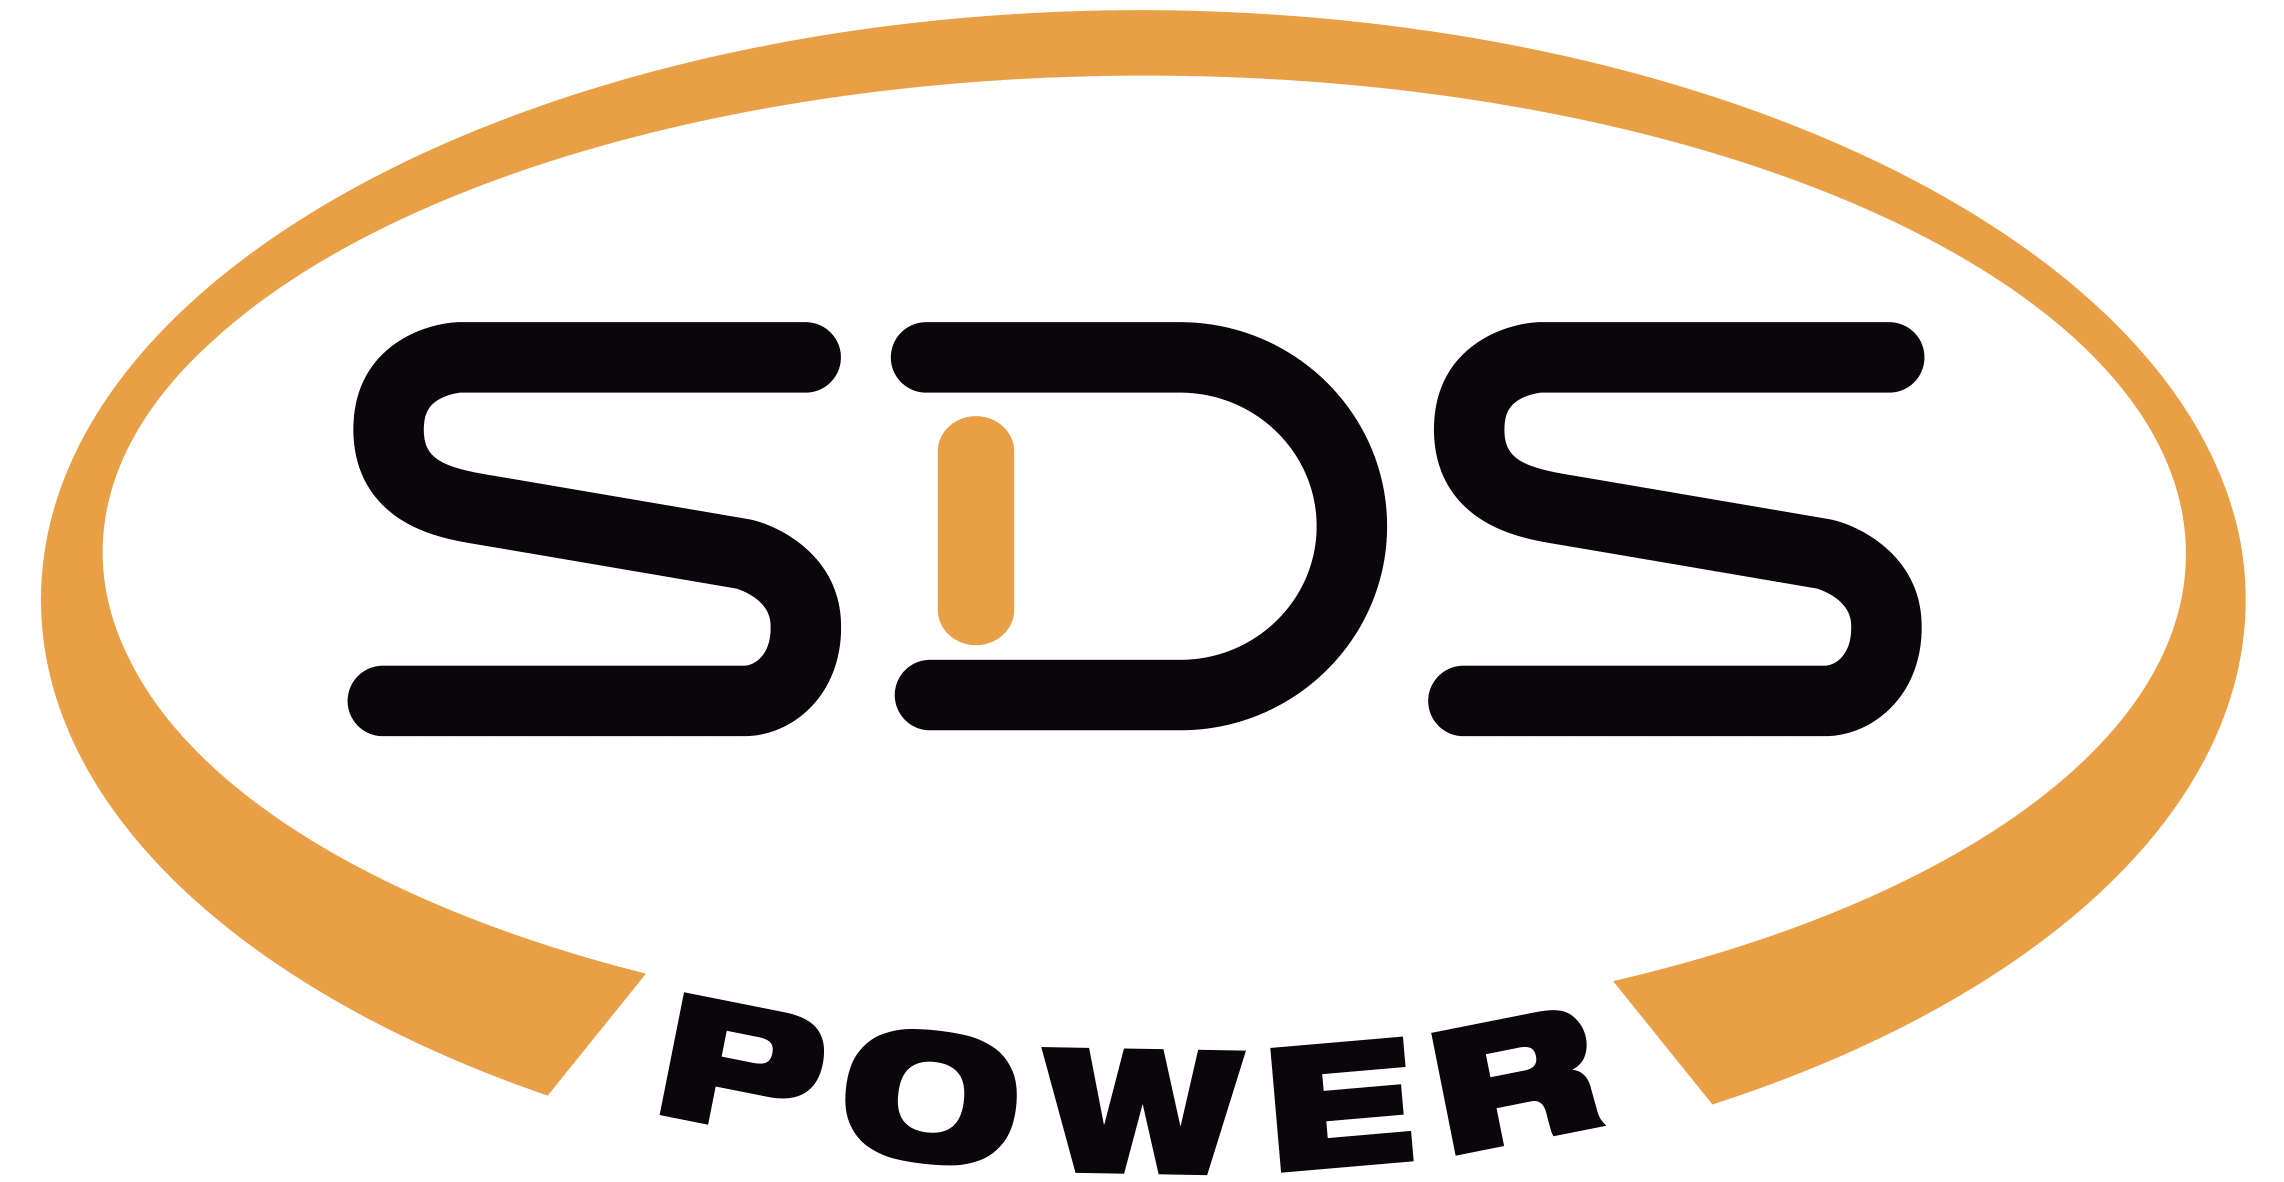 Sds Power